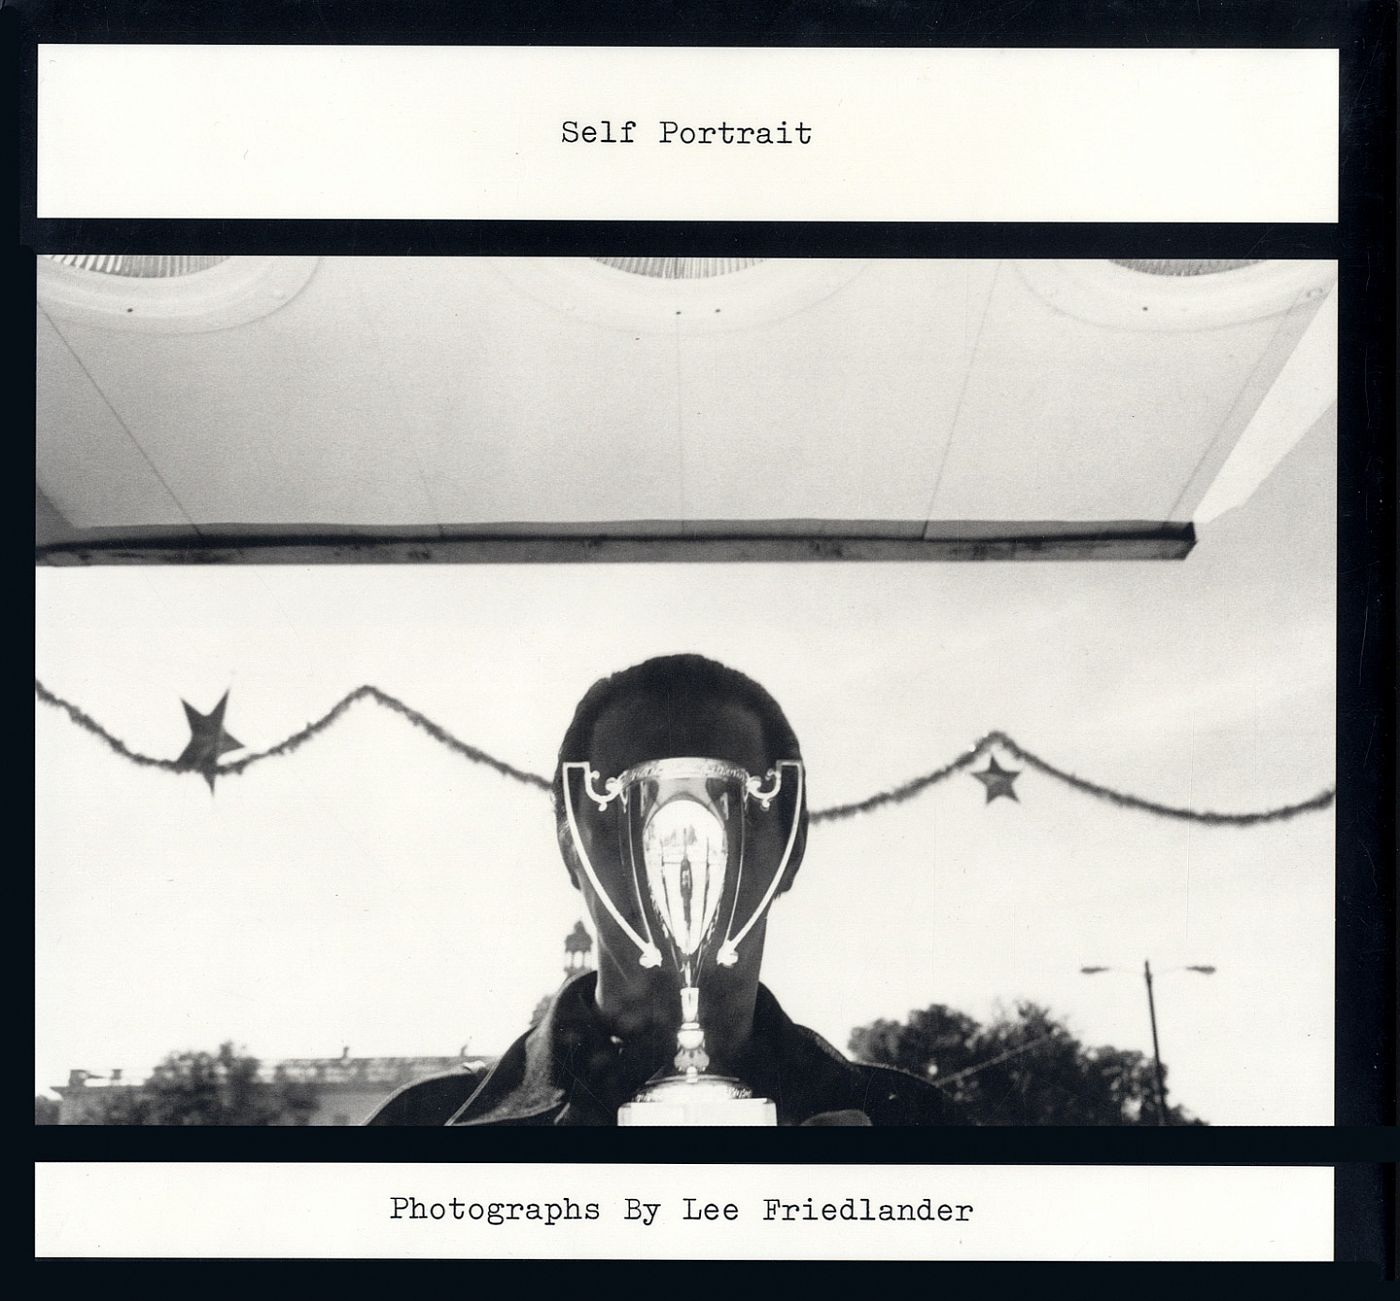 Self Portrait: Photographs by Lee Friedlander (Third Revised Hardcover Edition, MoMA, New York) [SIGNED]